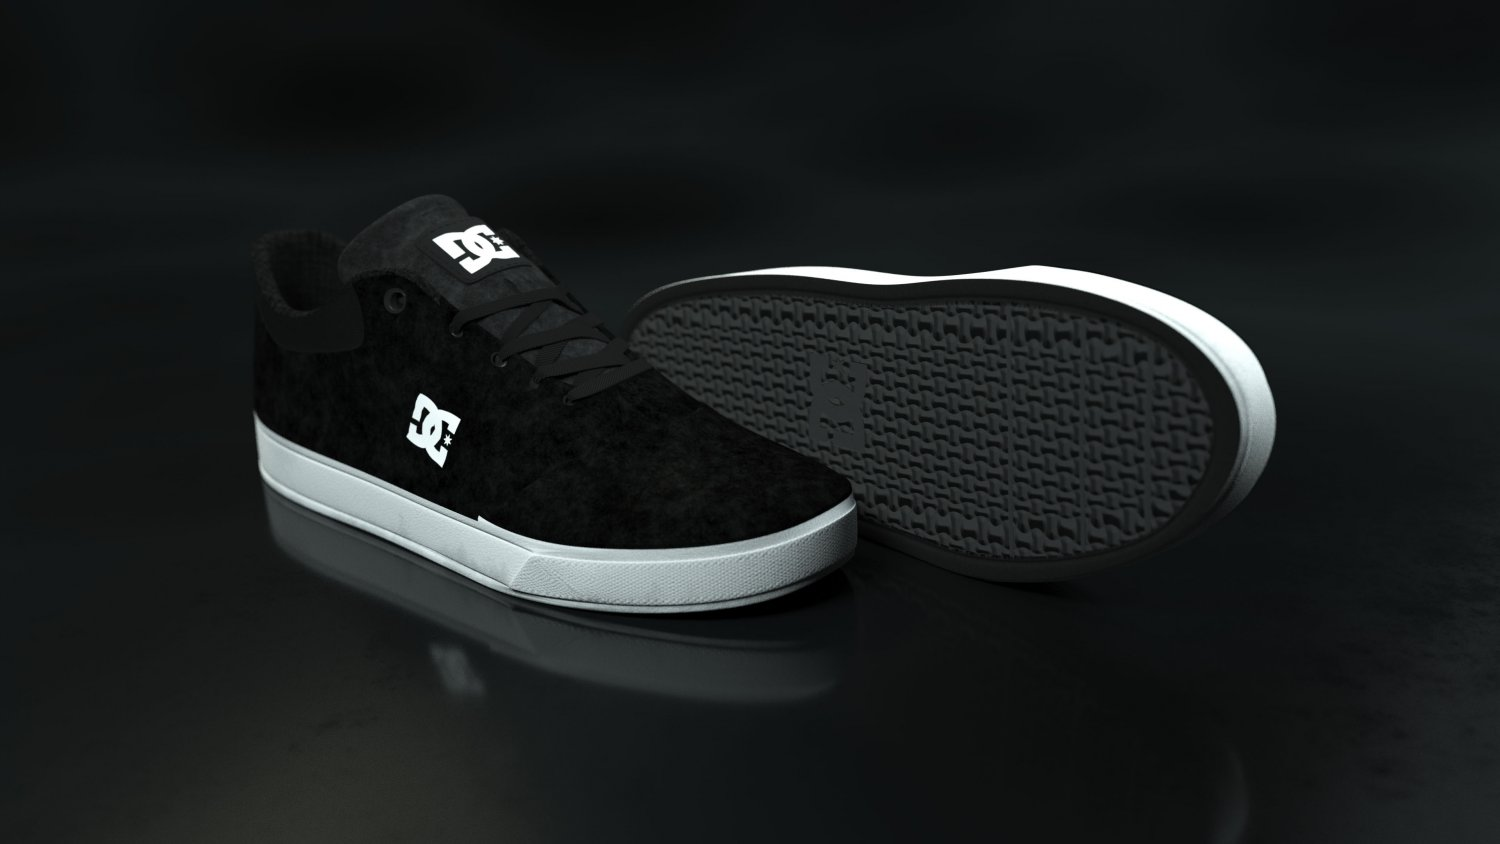 9c684aefc6 Realisitc DC Shoes Crisis - Black 3D Model in Clothing 3DExport